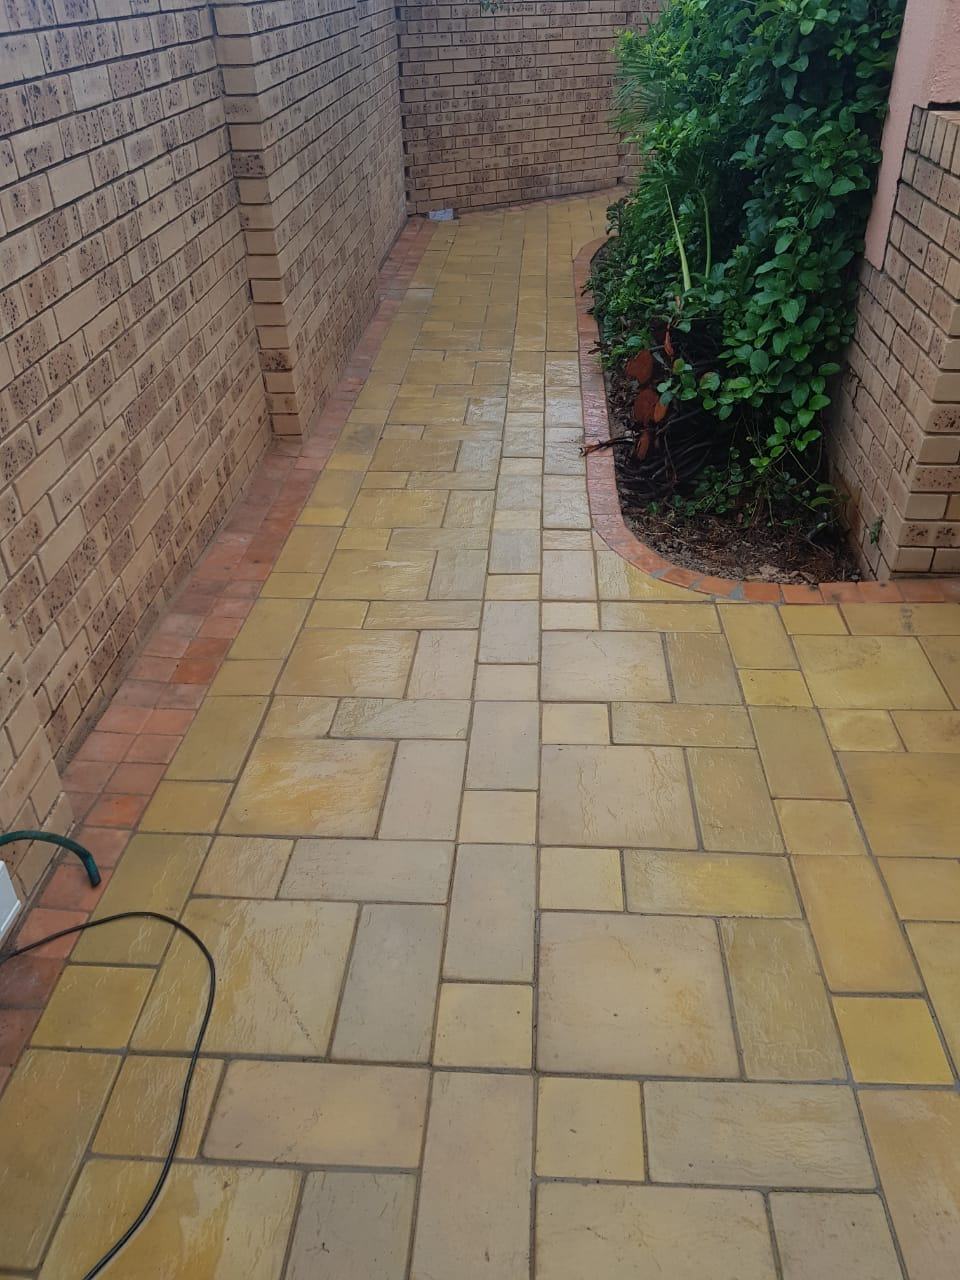 Walkway full, half and quarter paving blocks